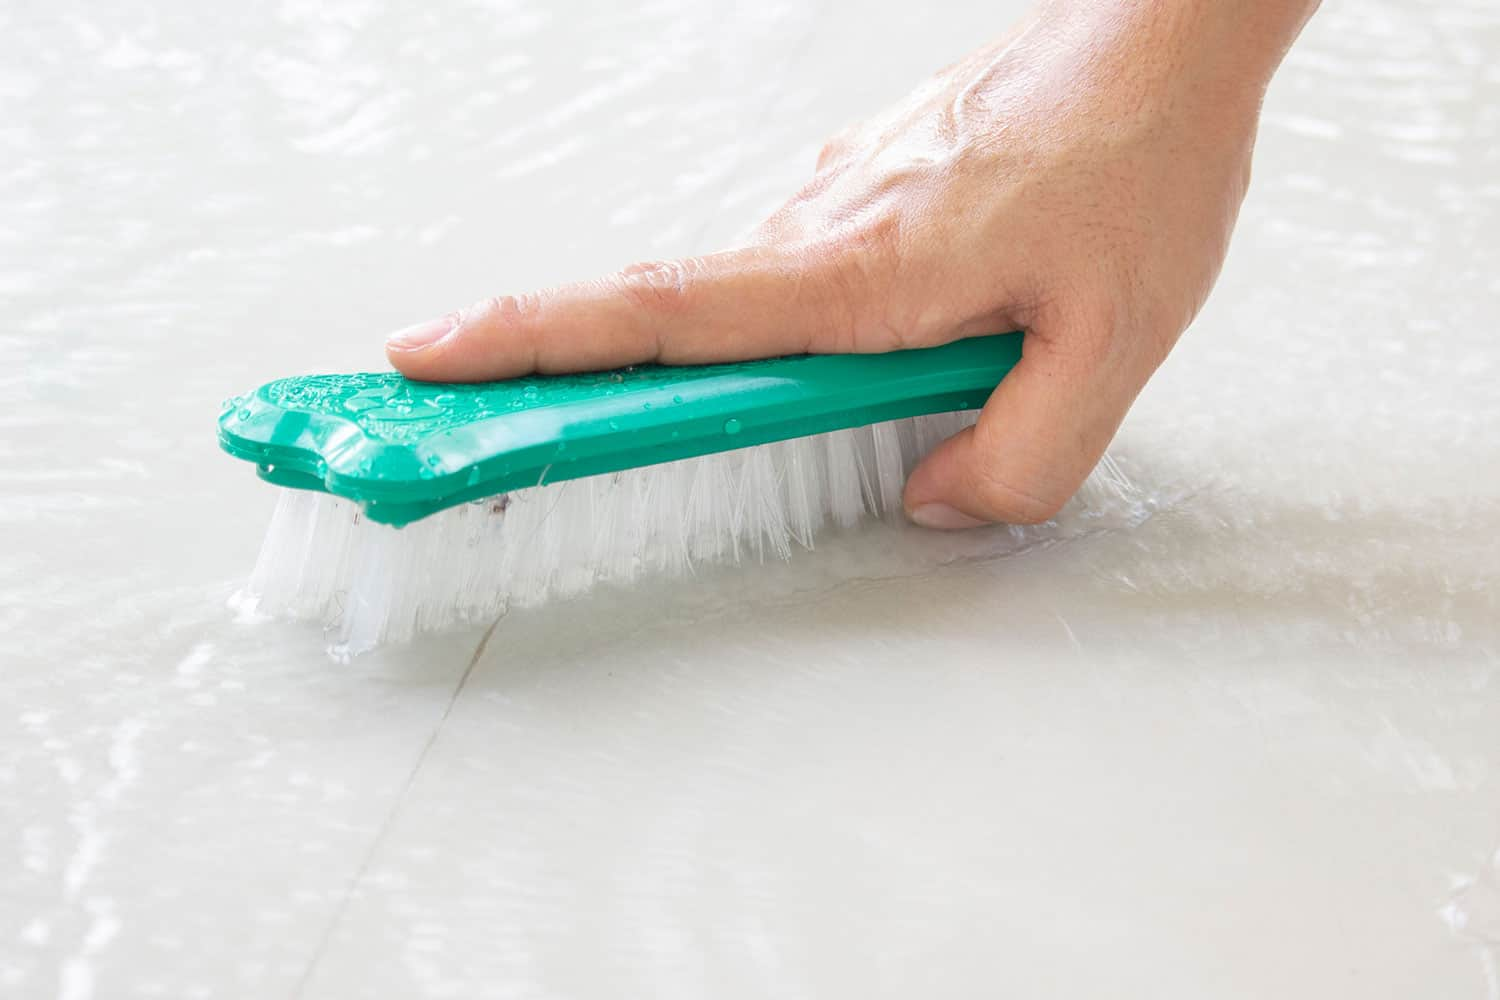 scrubbing grout with brush